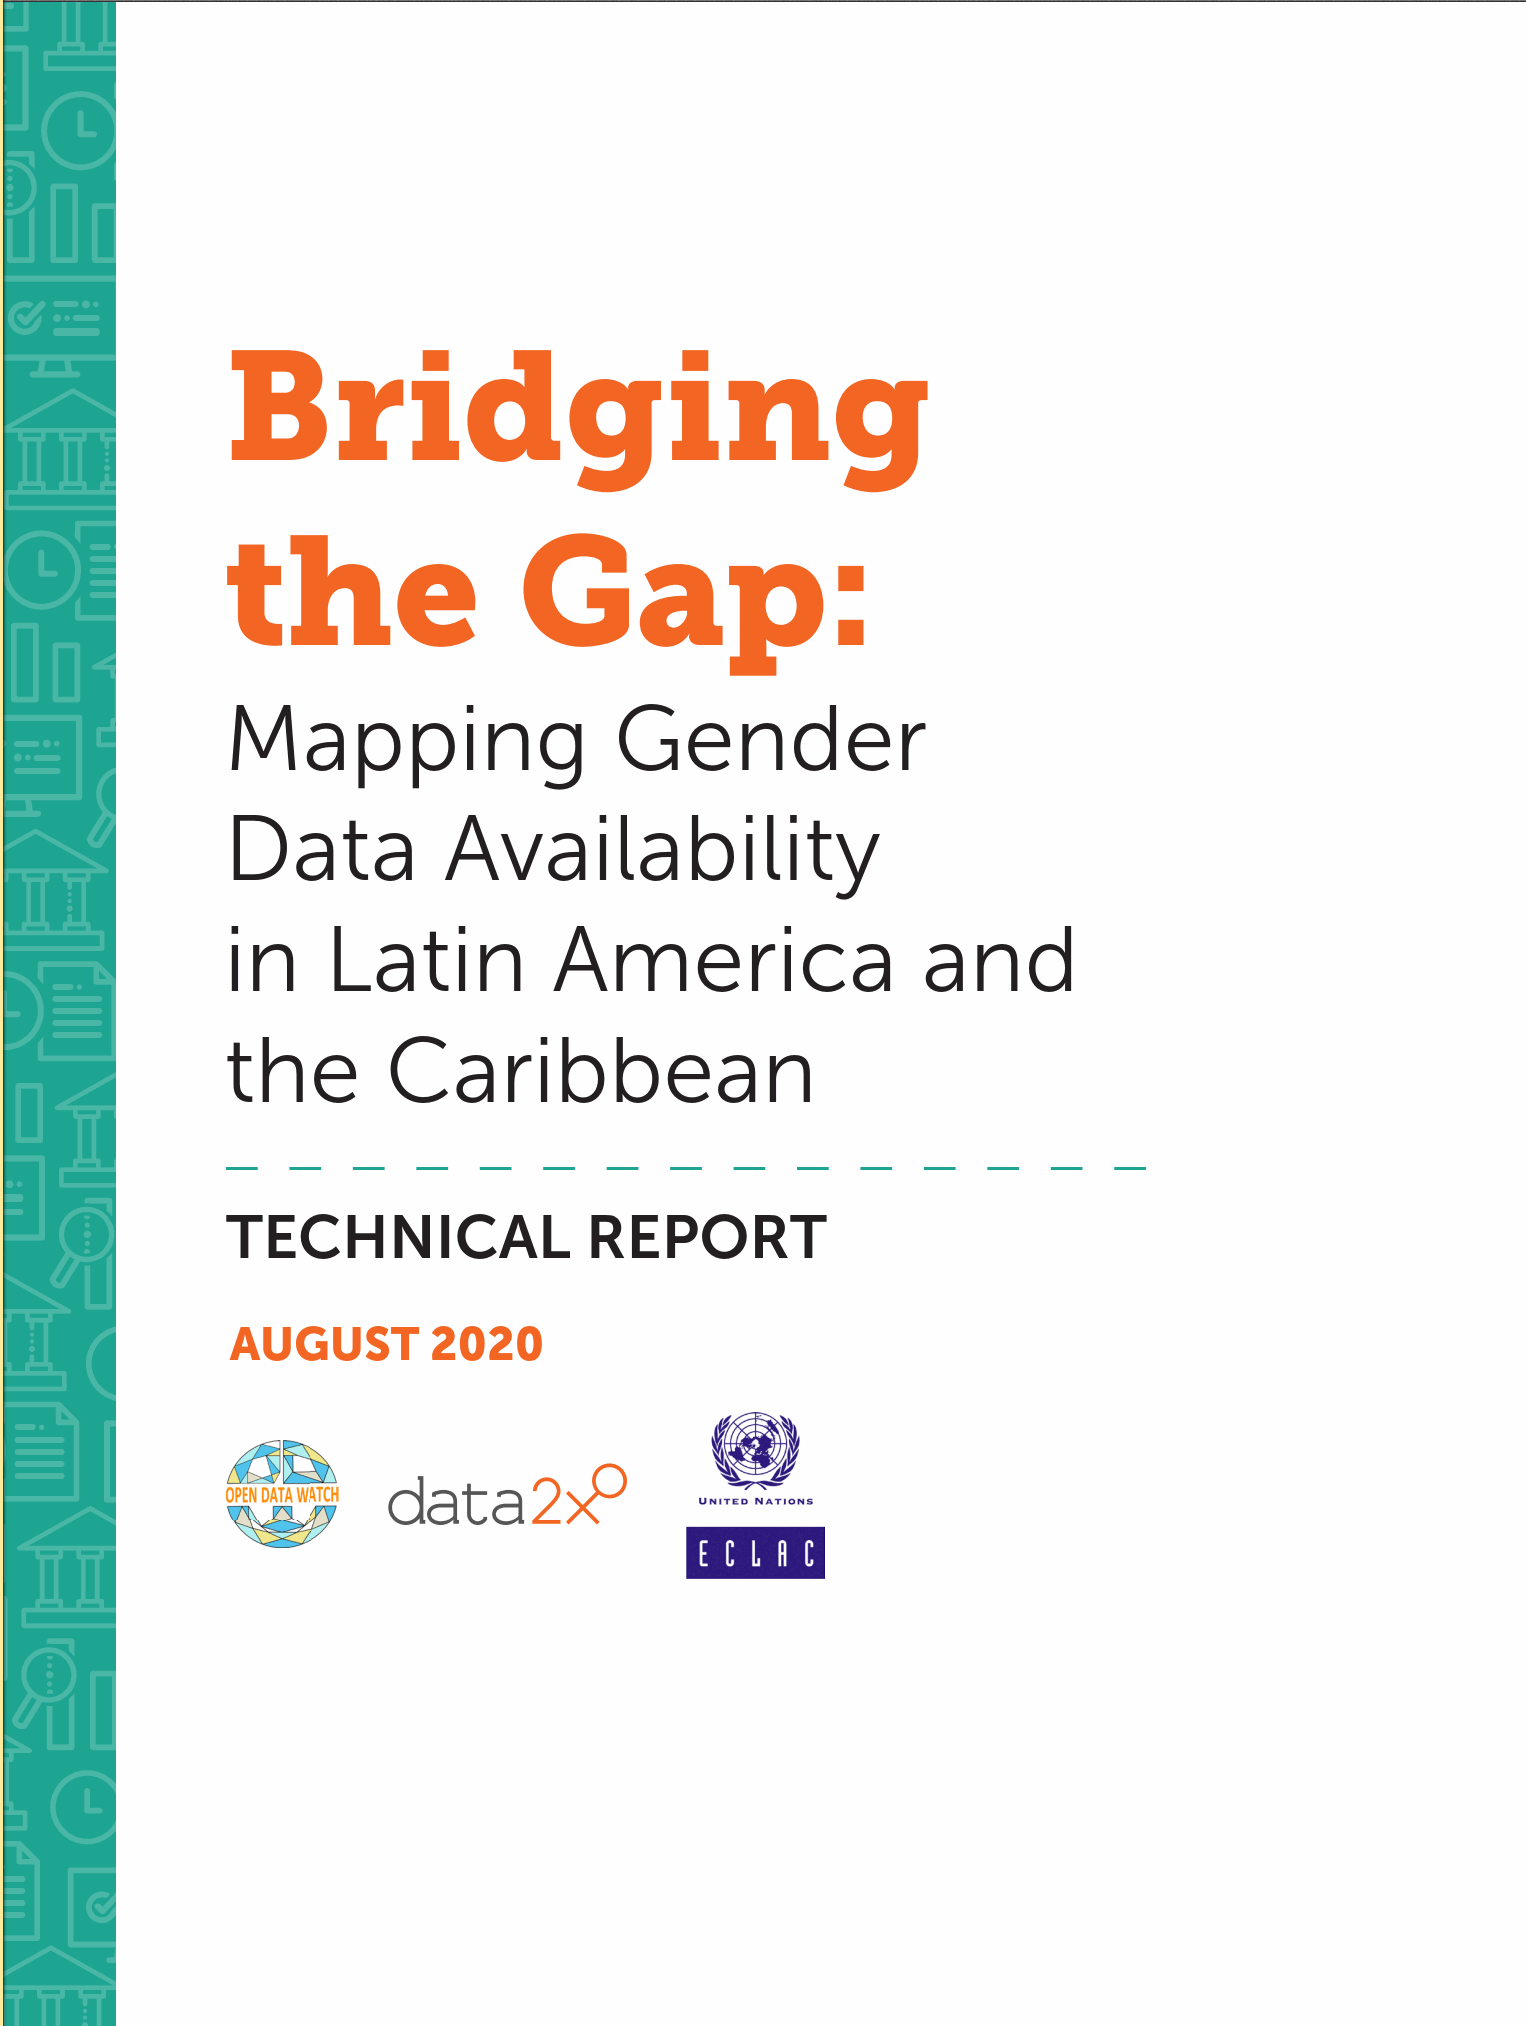 Bridging the Gap - Gender Data in Latin America and the Caribbeanri